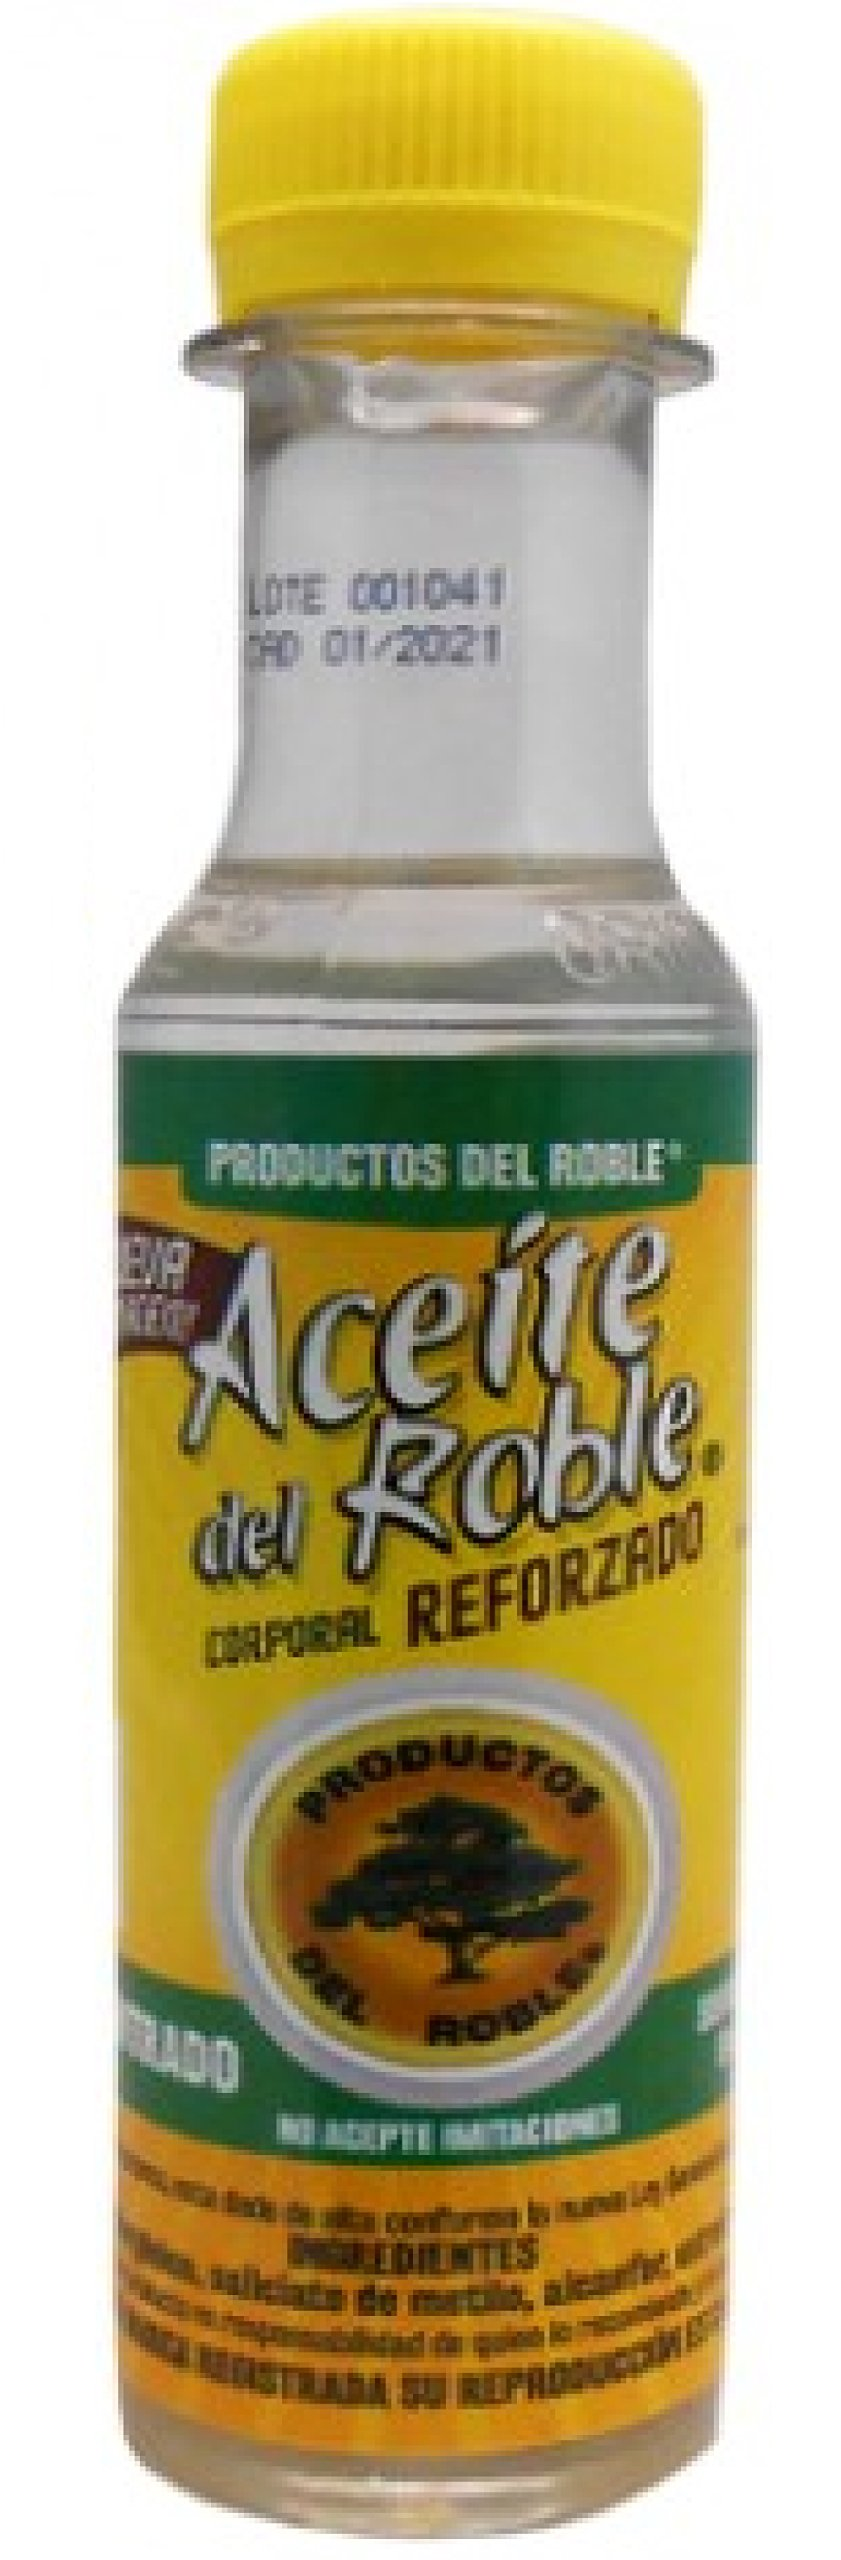 Reinforced Body Oak Oil for Cramps Arthritic pain and Inflammation 150ml, Aceite del Roble Corporal